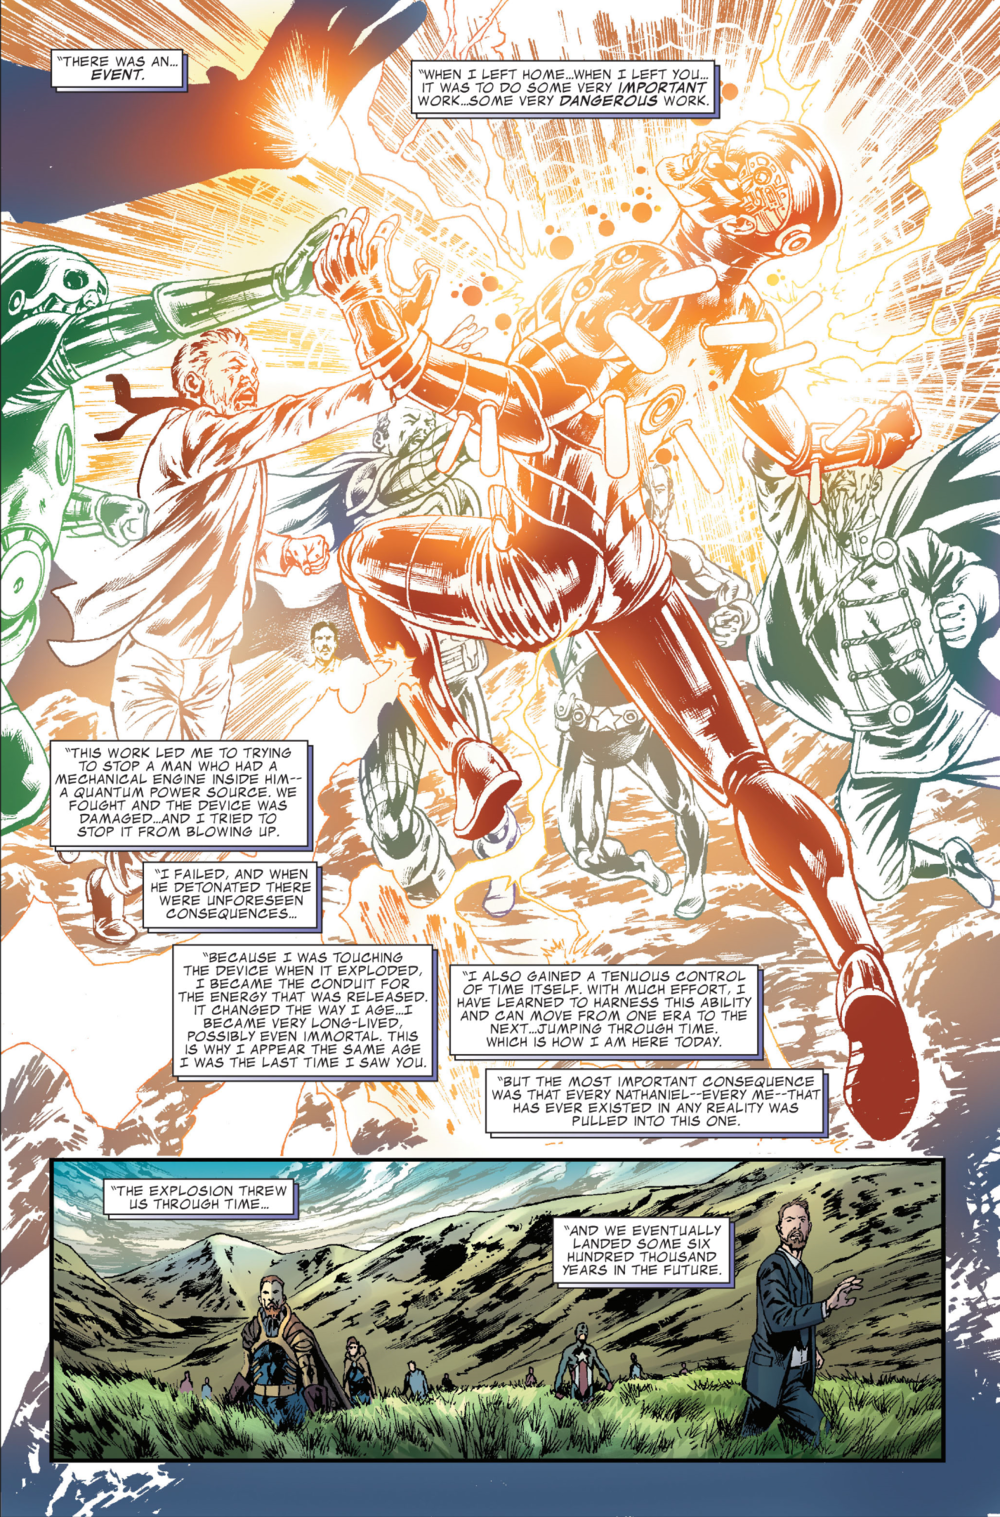 Fantastic Four #581, art by Neil Edwards, Paul Neary, and Paul Mounts